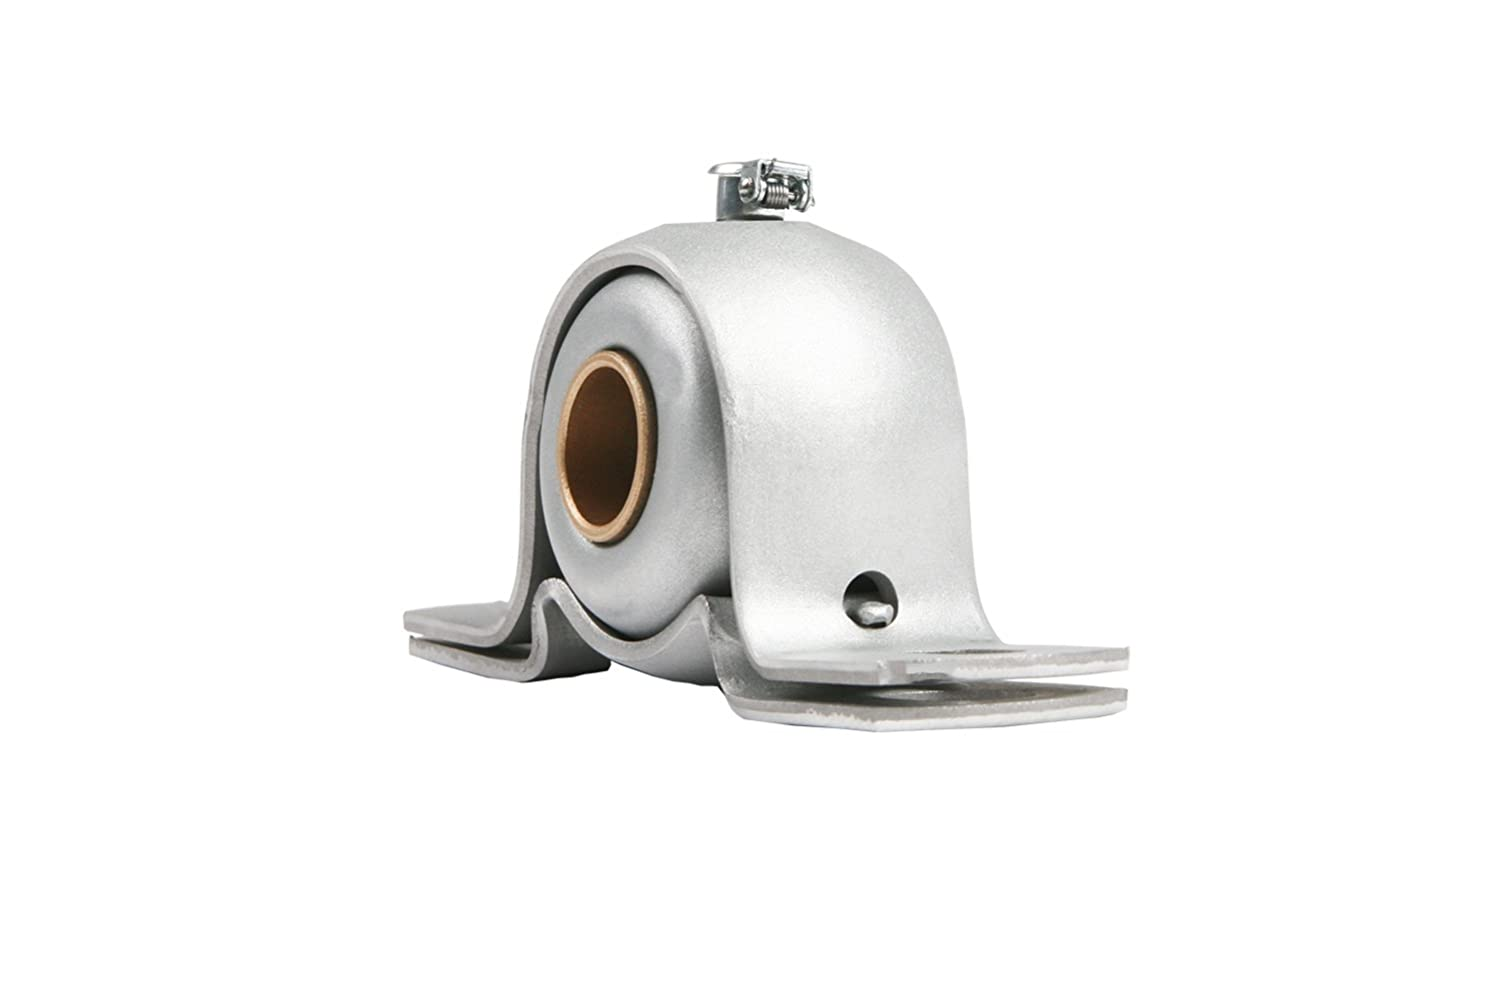 Galvanized Steel Self-Aligning 4.6 Length 1.3 Width 1 3//16 BFE19A Pillow Block Bearing Oil Cup Quantity 2: Triangle Mfg